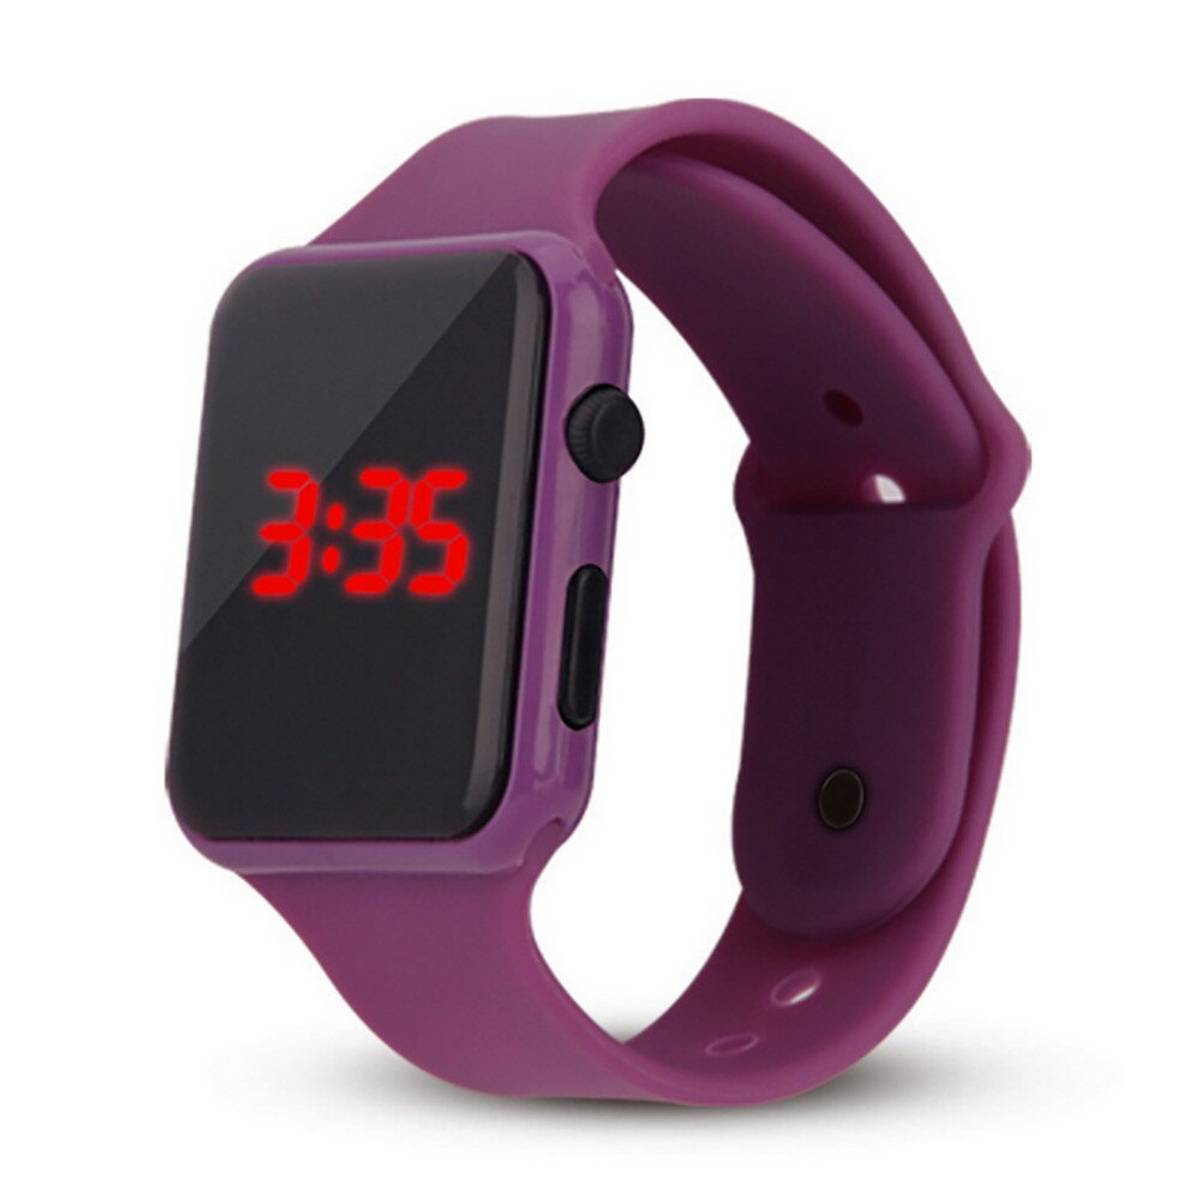 LED Wrist Bands Digital Watch 10 Colors Available